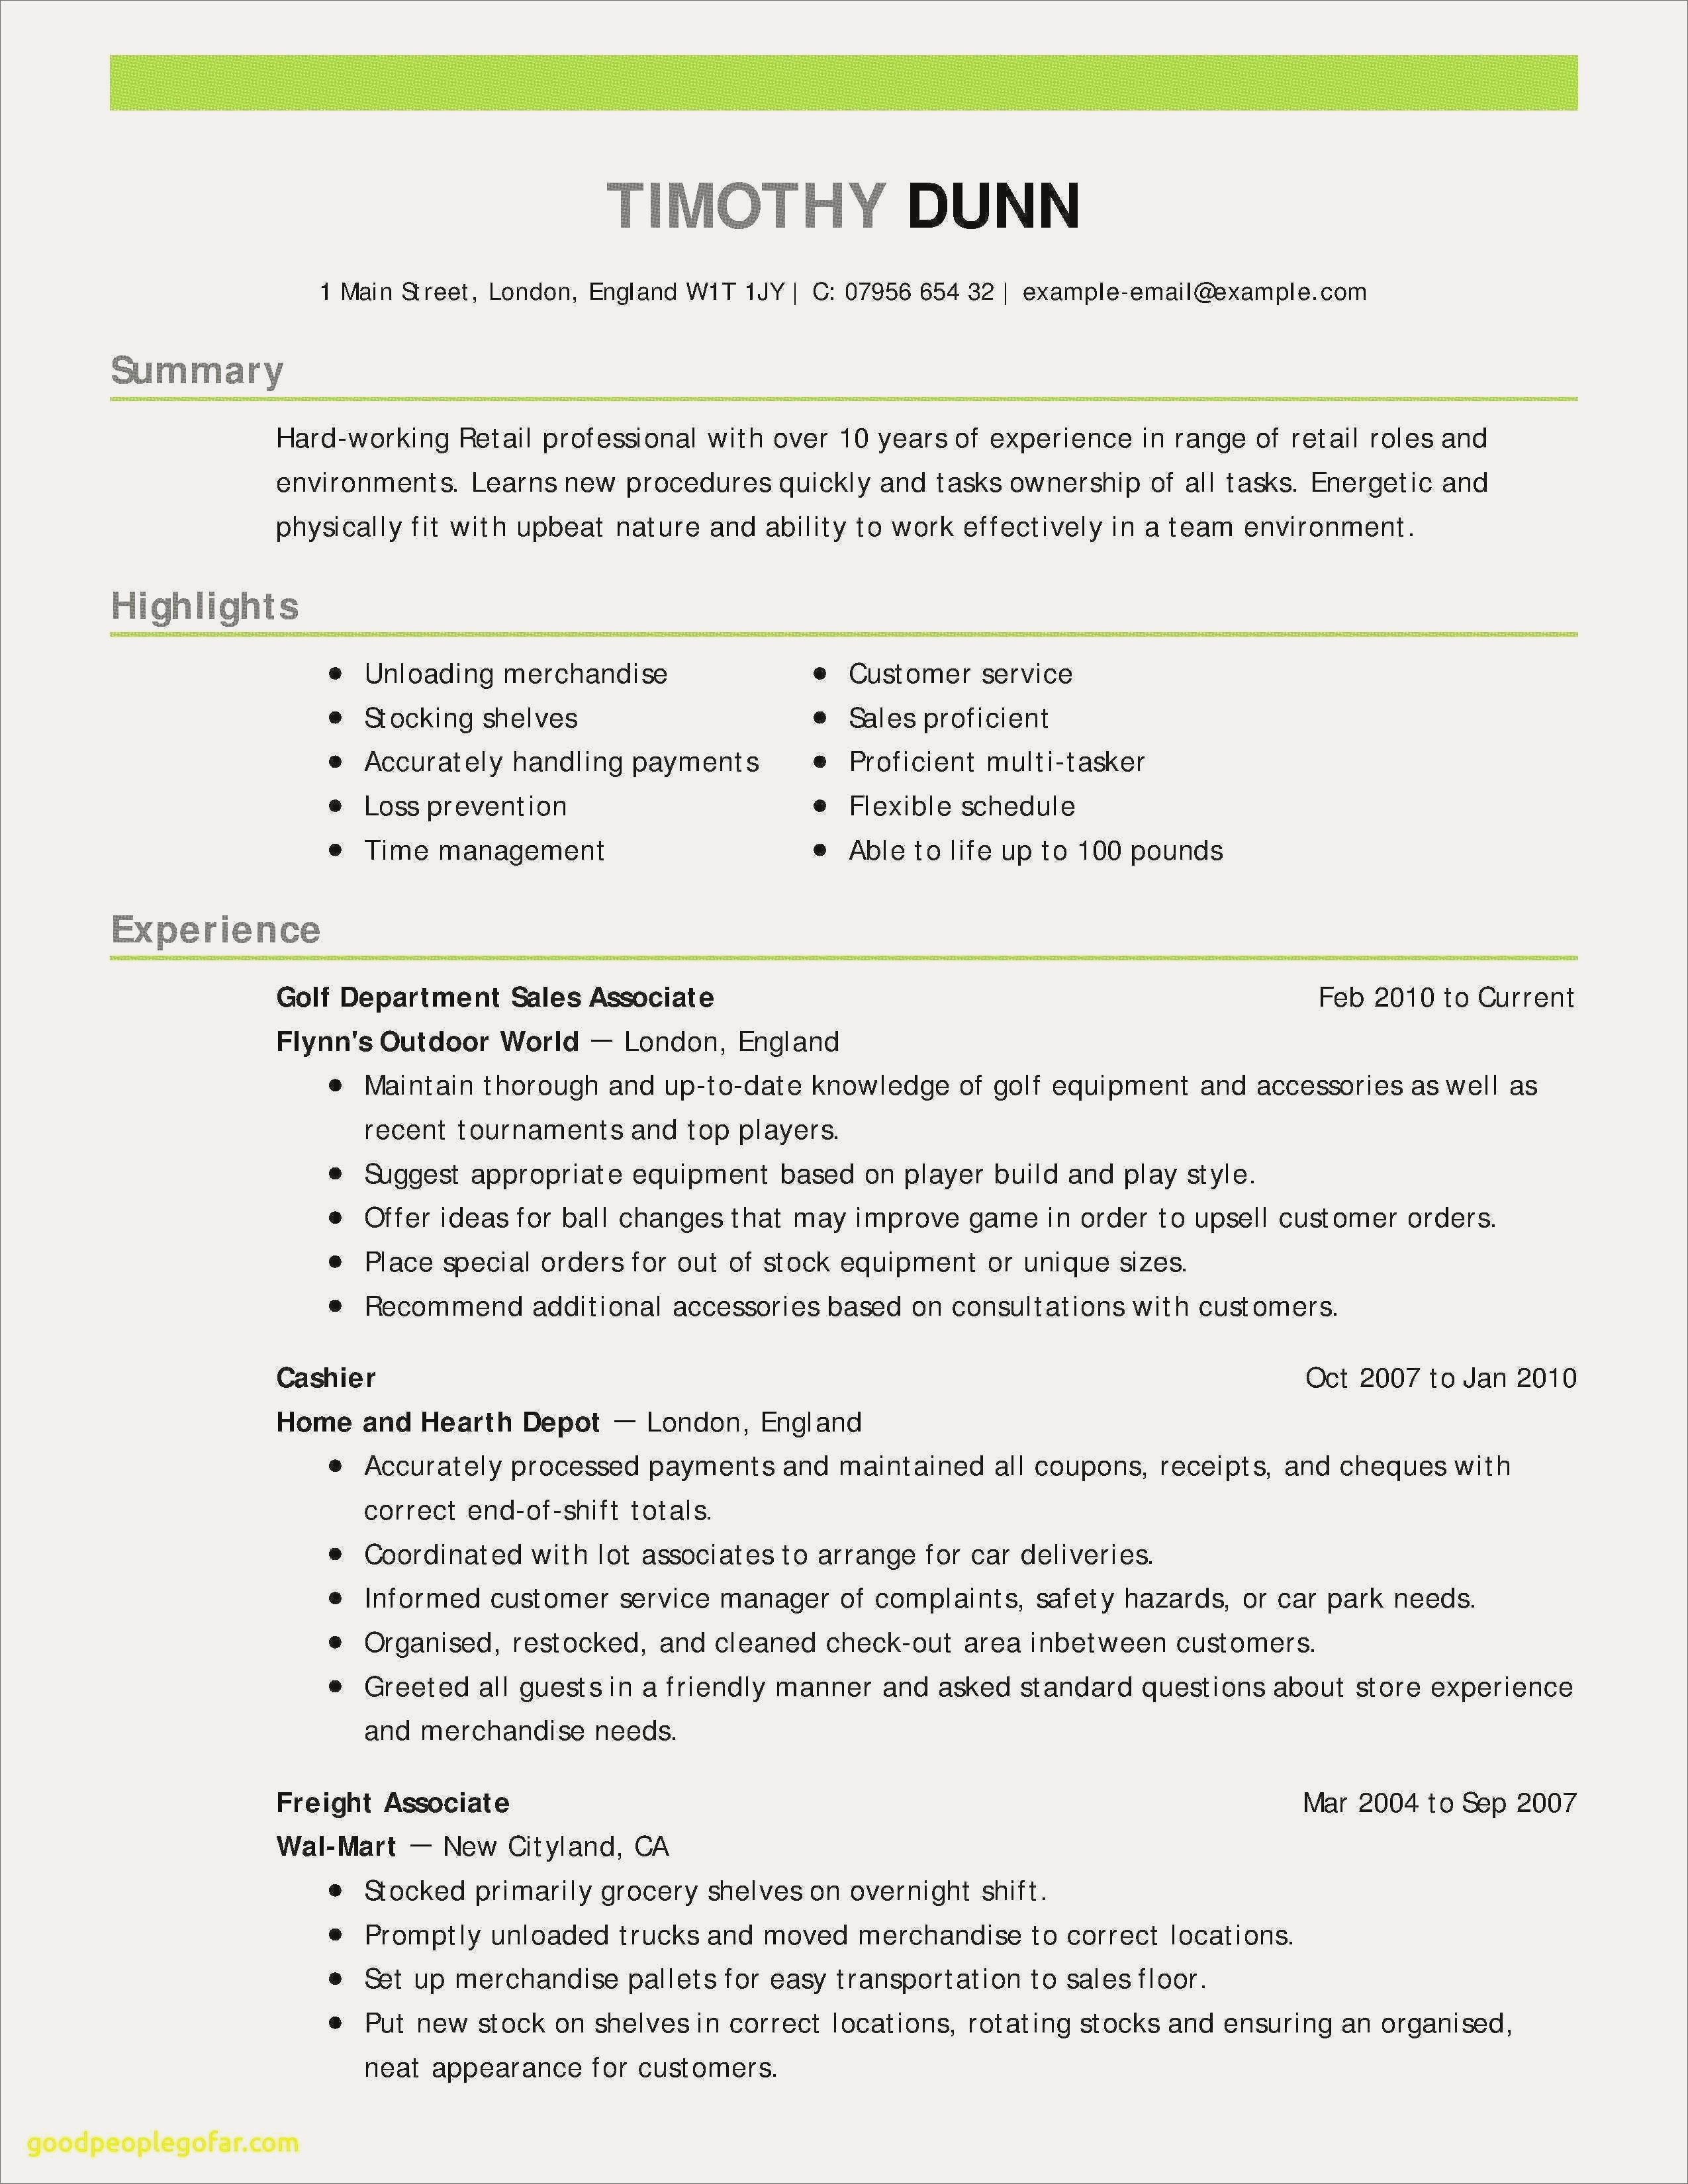 Examples Of Resume Skills - Resume Examples Skills and Abilities Best Customer Service Resume